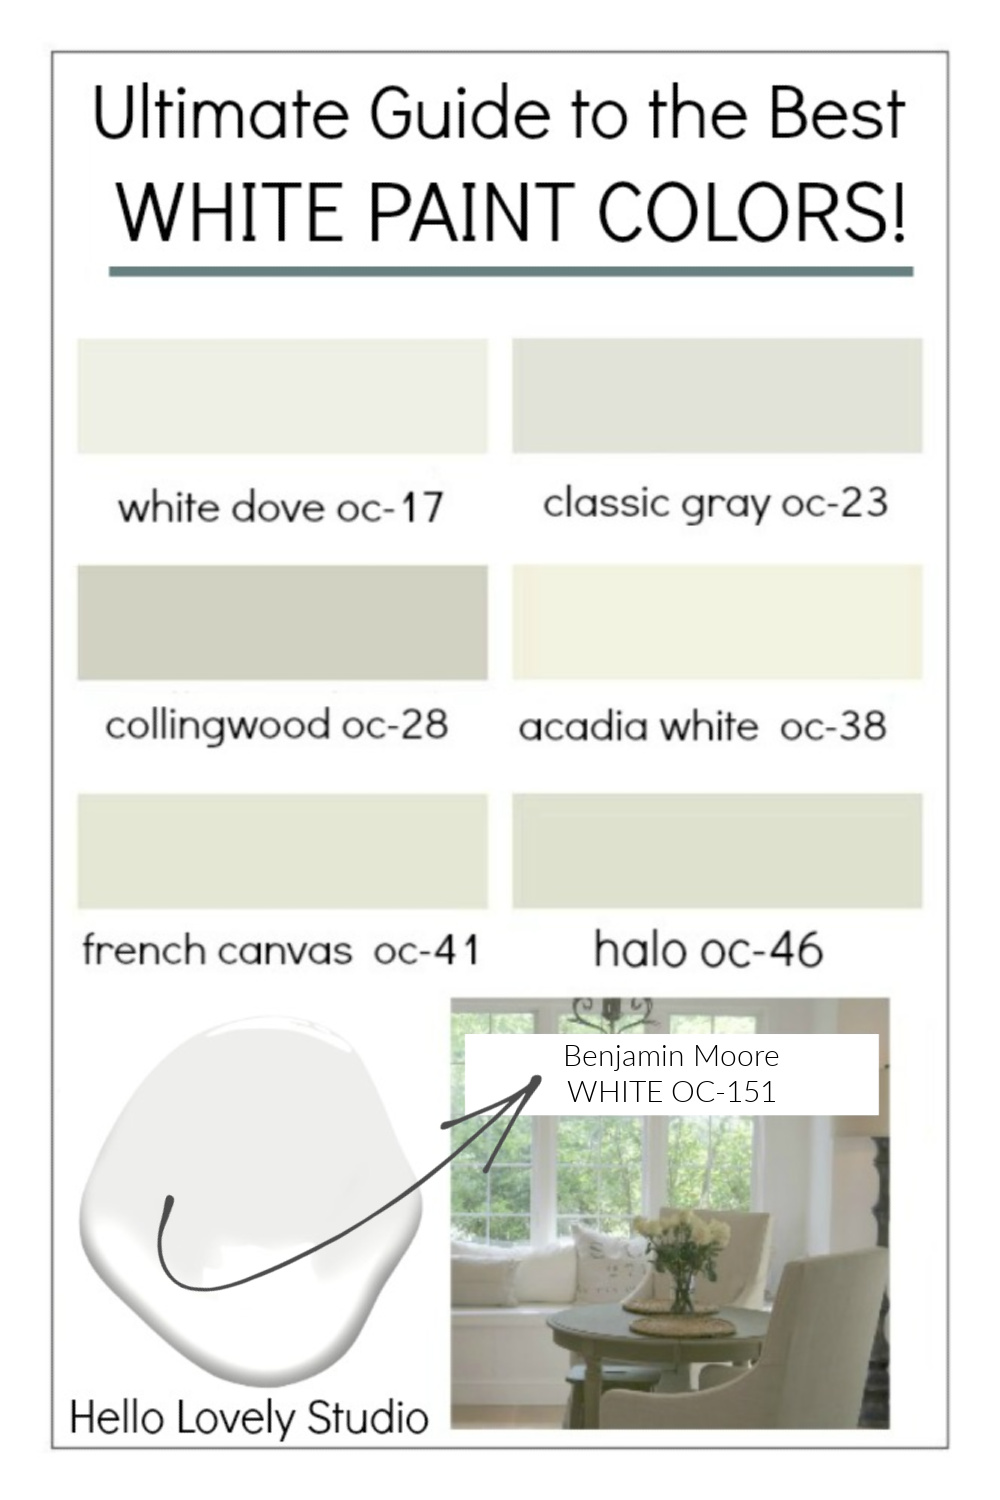 Best white paint color guide on Hello Lovely. #whitepaintcolors #bestwhitepaint